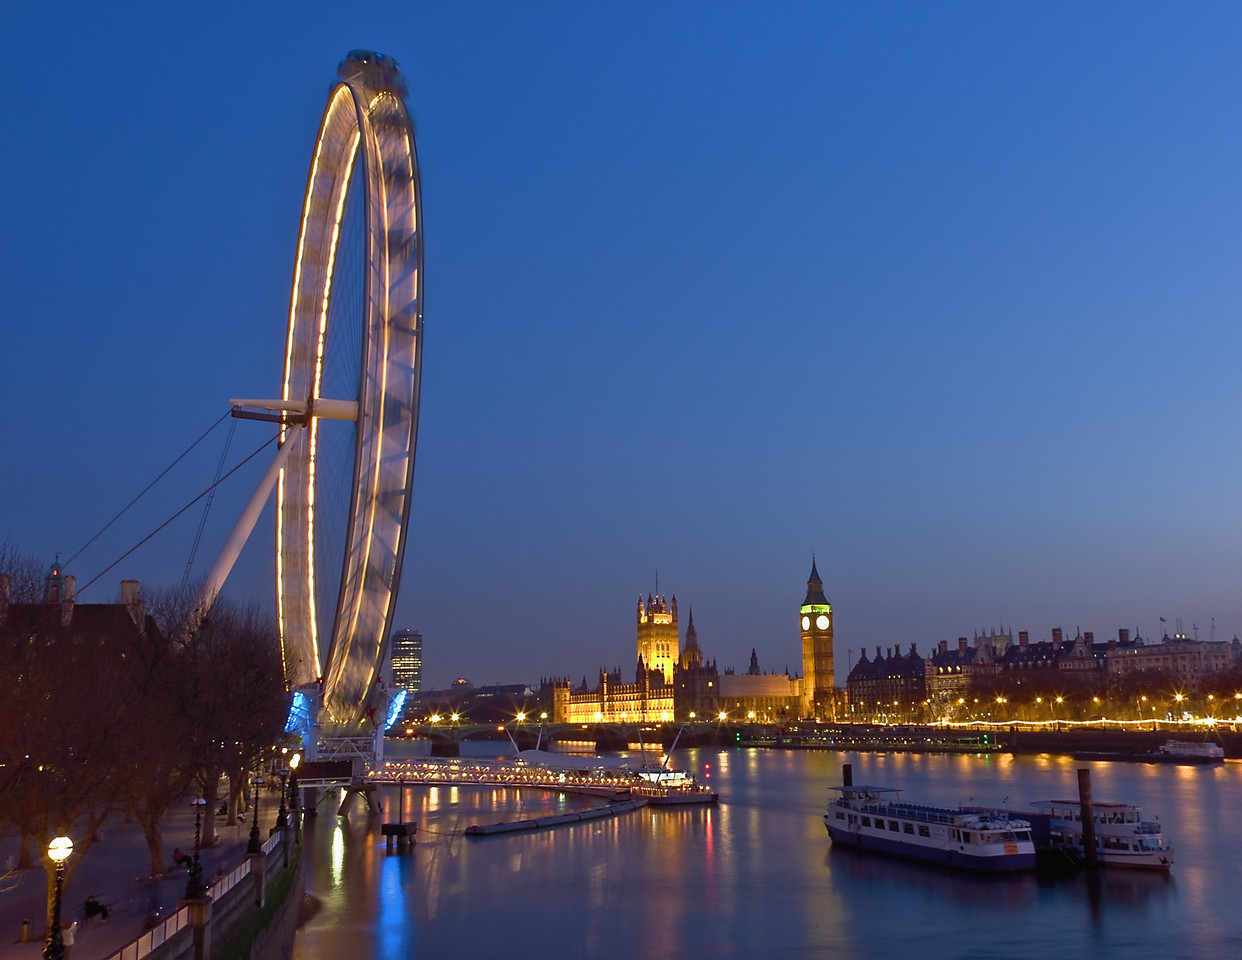 The London Eye and Parliament at Night